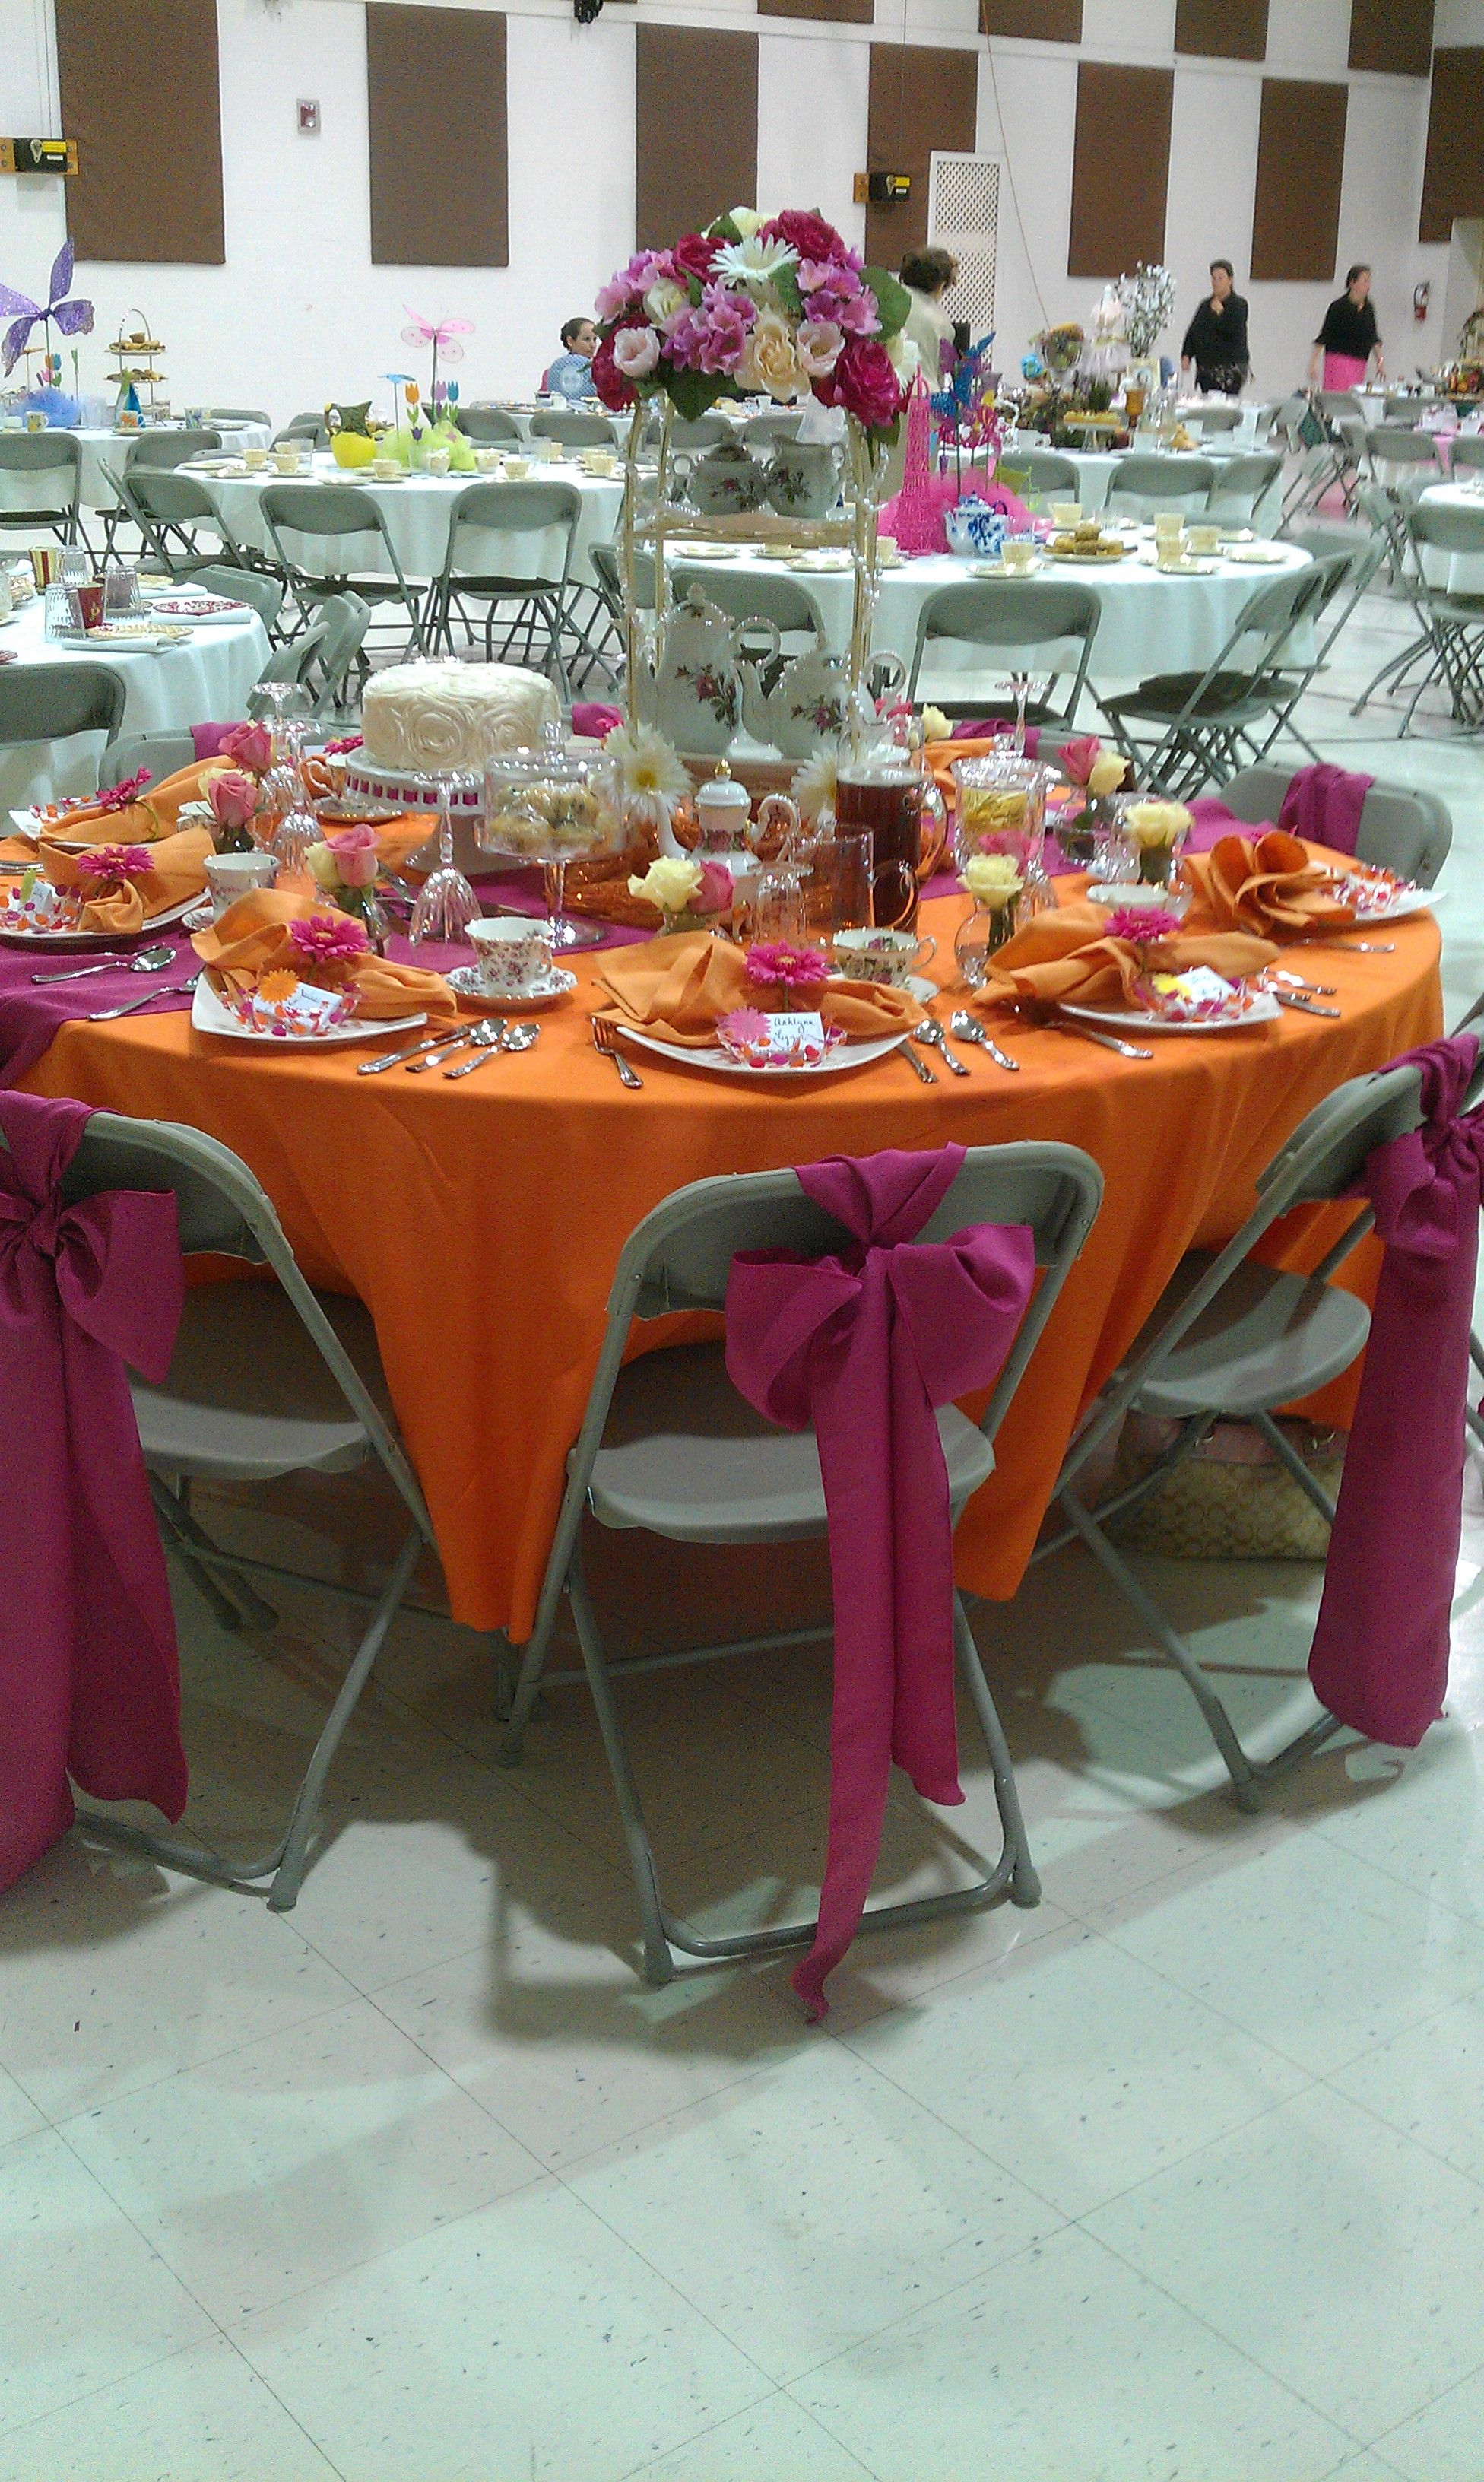 Pin By Megan Shirley On Farewell First Grade Tea Party Mothers Day Event Mothers Day Dinner Mothers Day Brunch